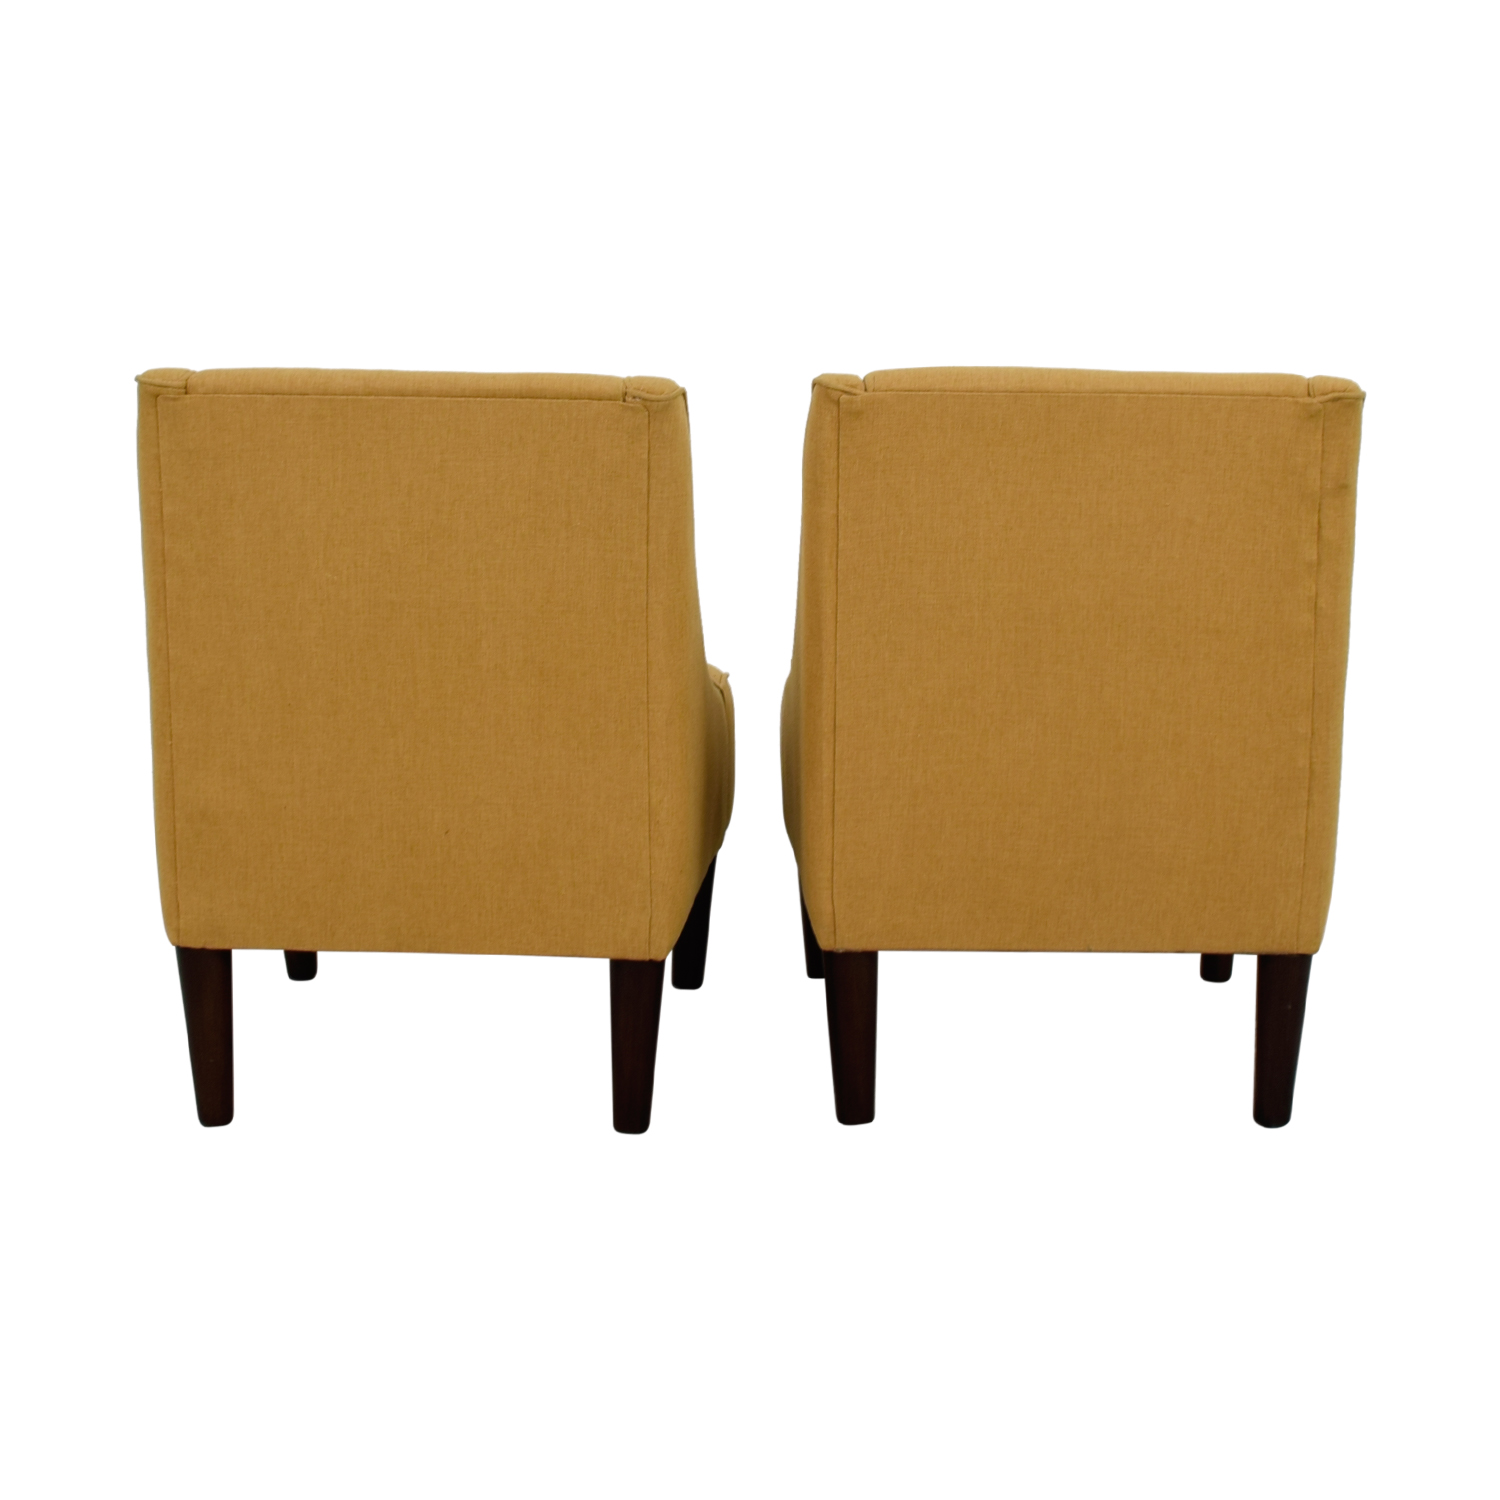 Thomas Paul Thomas Paul Mustard Tufted Accent Chairs Chairs